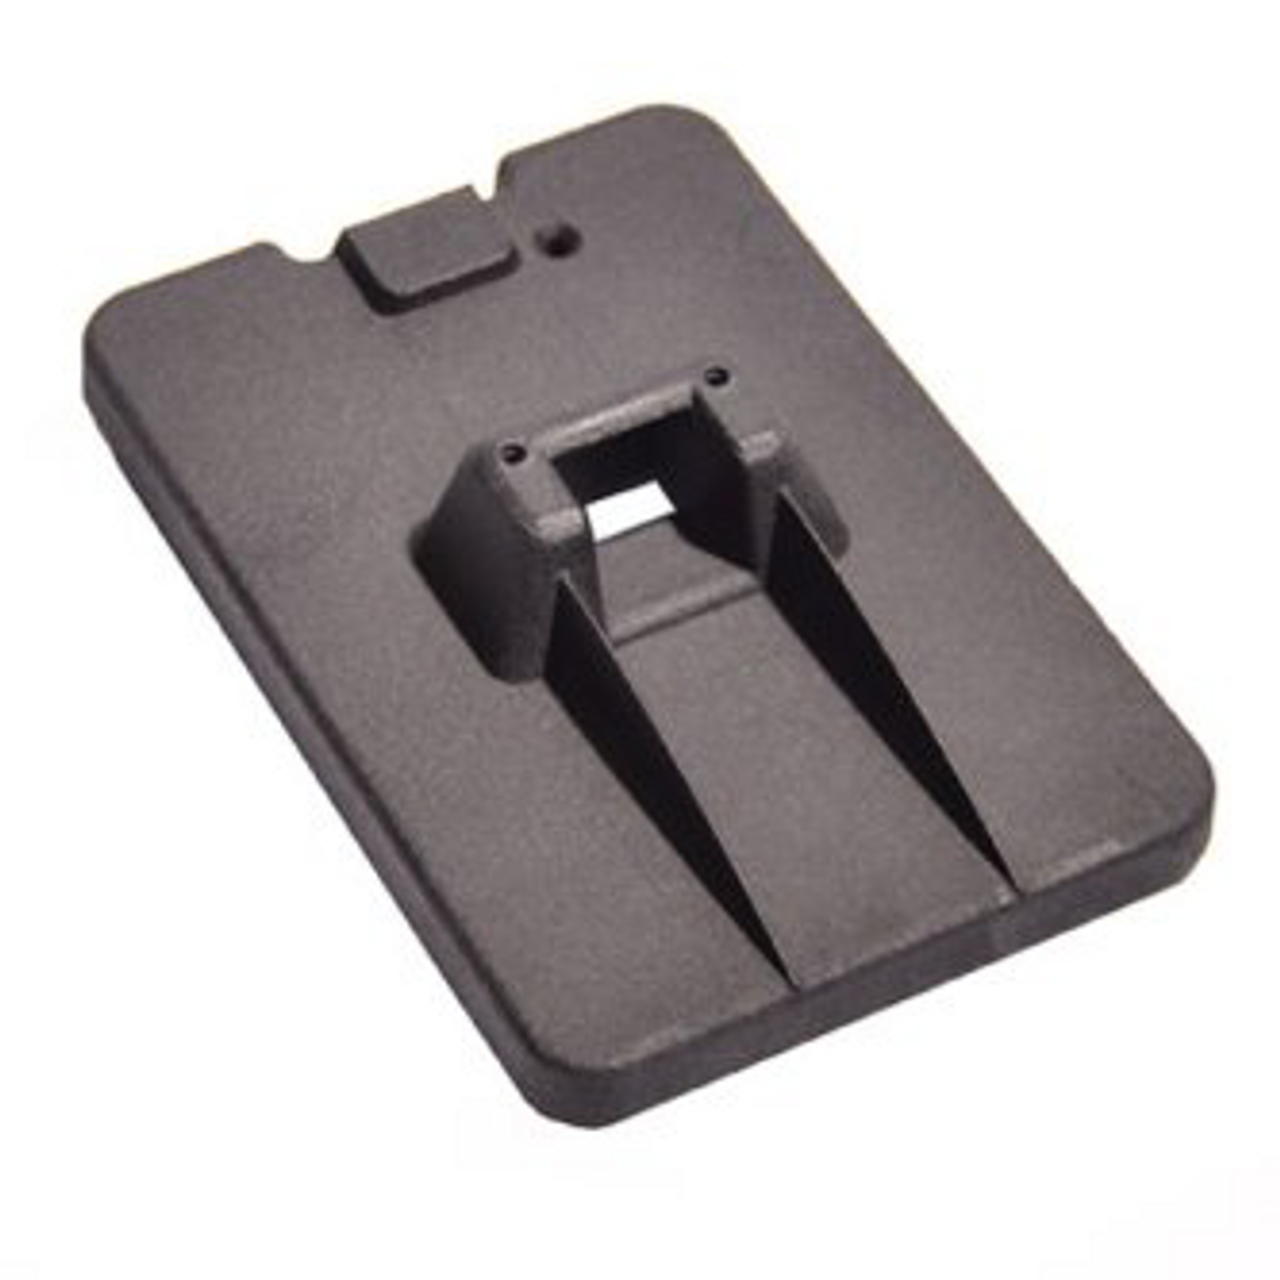 Verifone MX915/925 Back Plate by Tailwind